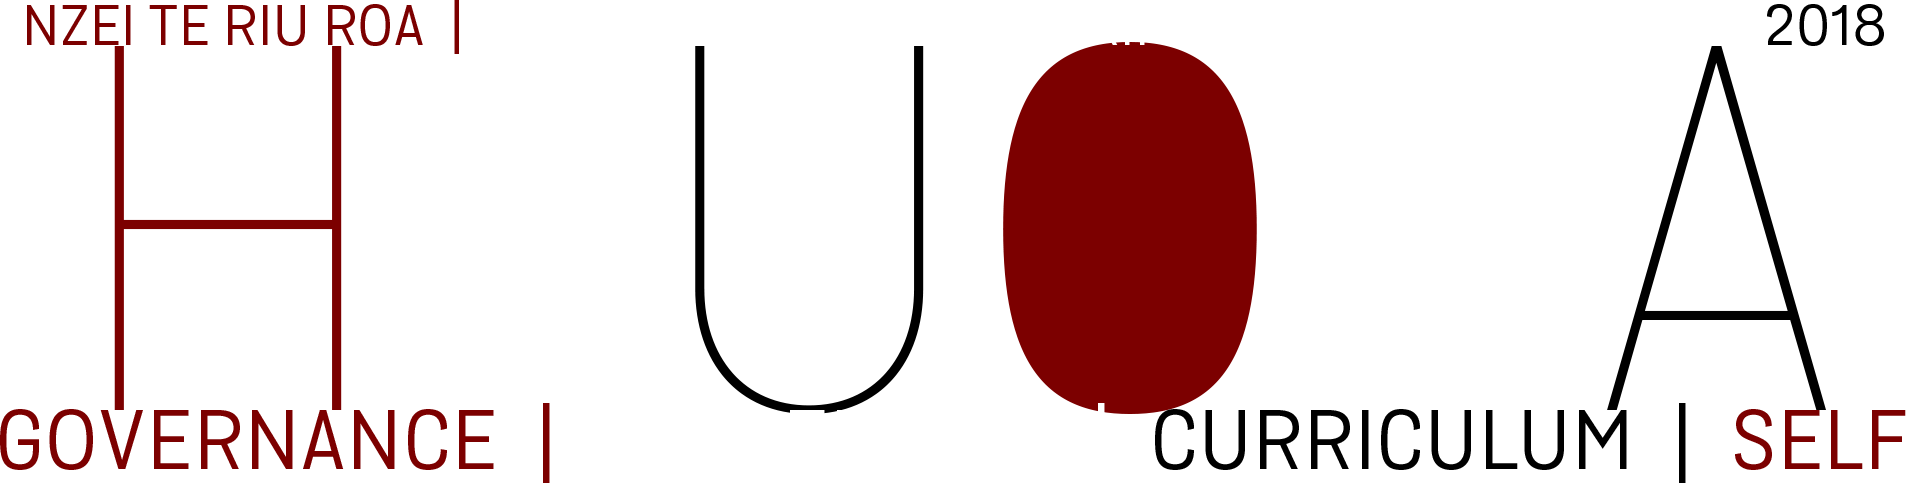 NZEI Rural and Teaching Principals' Conference 2018: Hauora: governance, leadership, curriculum, self